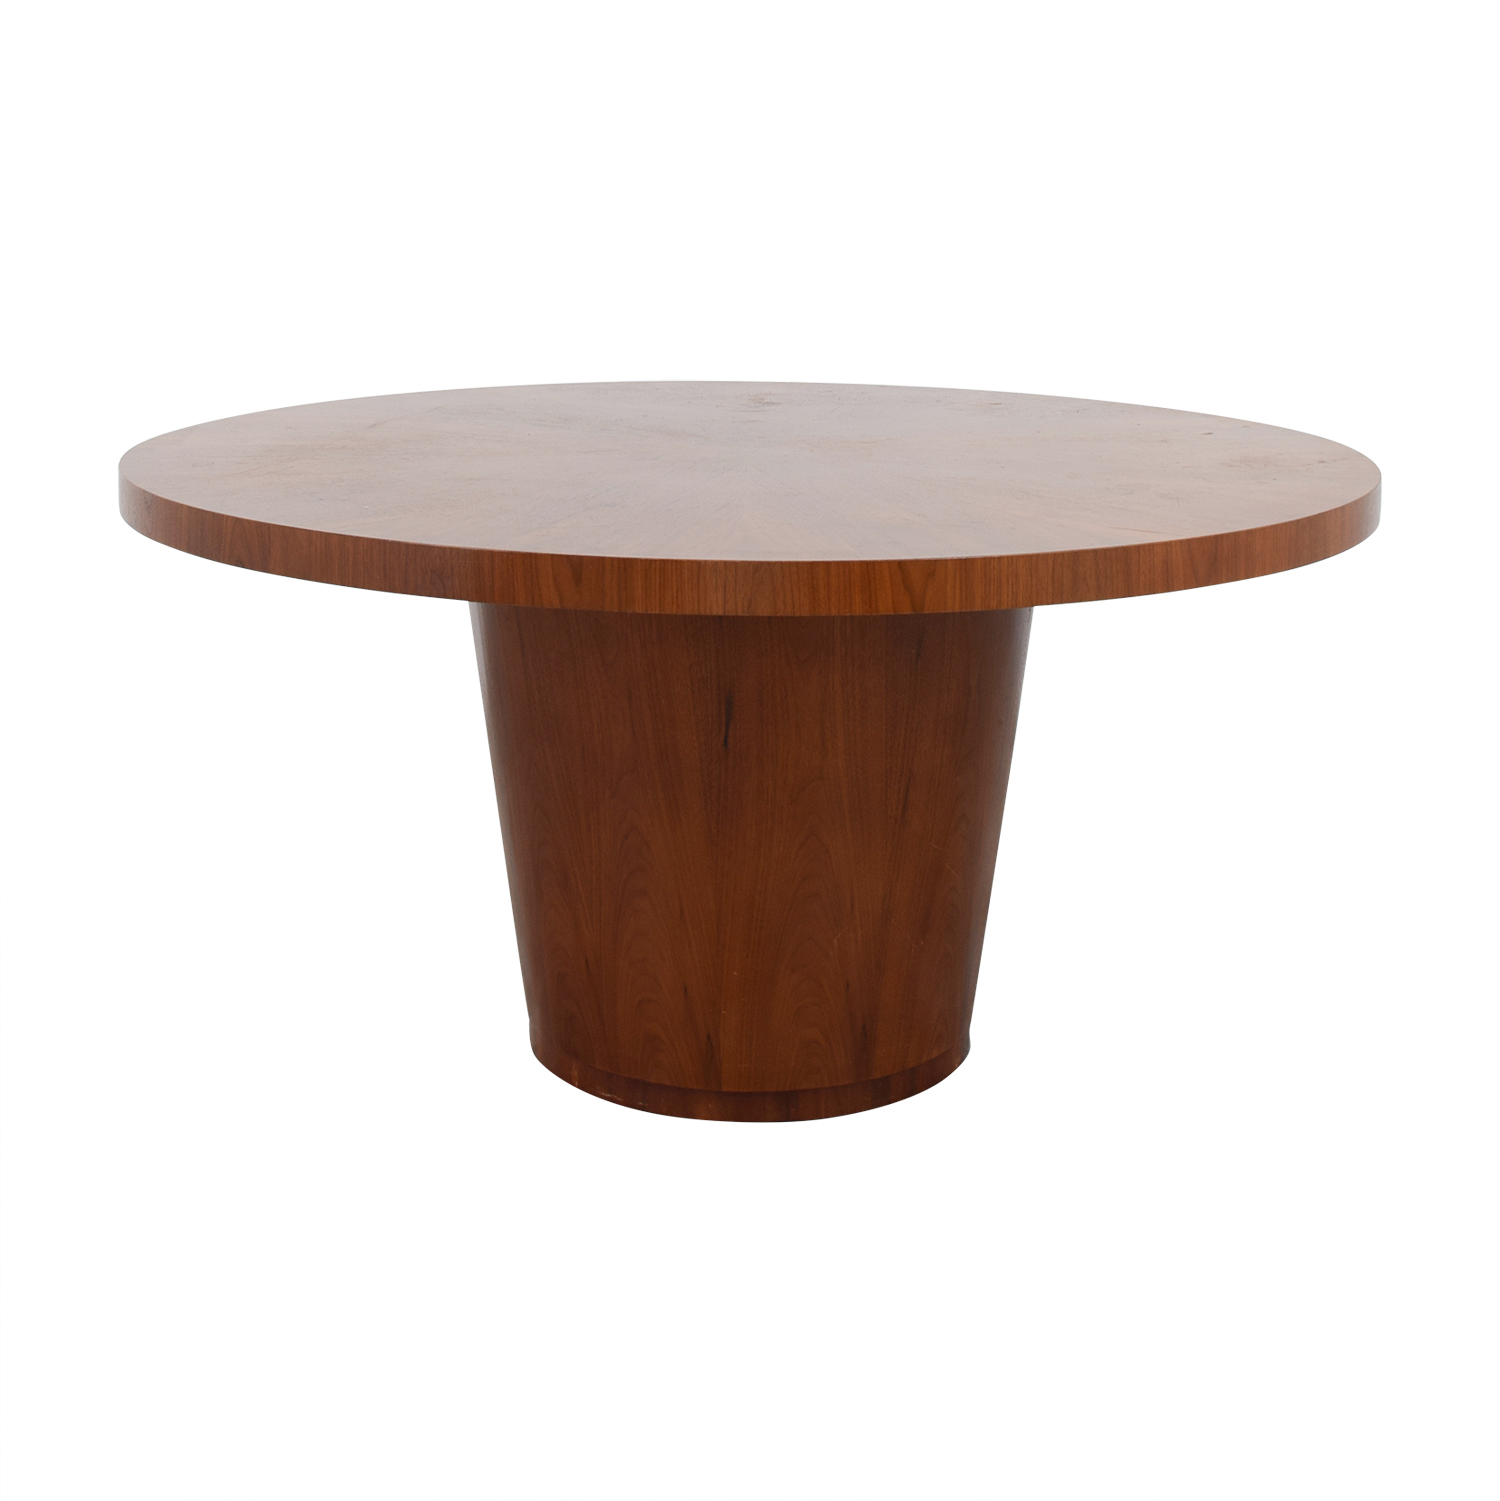 Crate & Barrel Crate & Barrel Orion Hard Wood Table dimensions